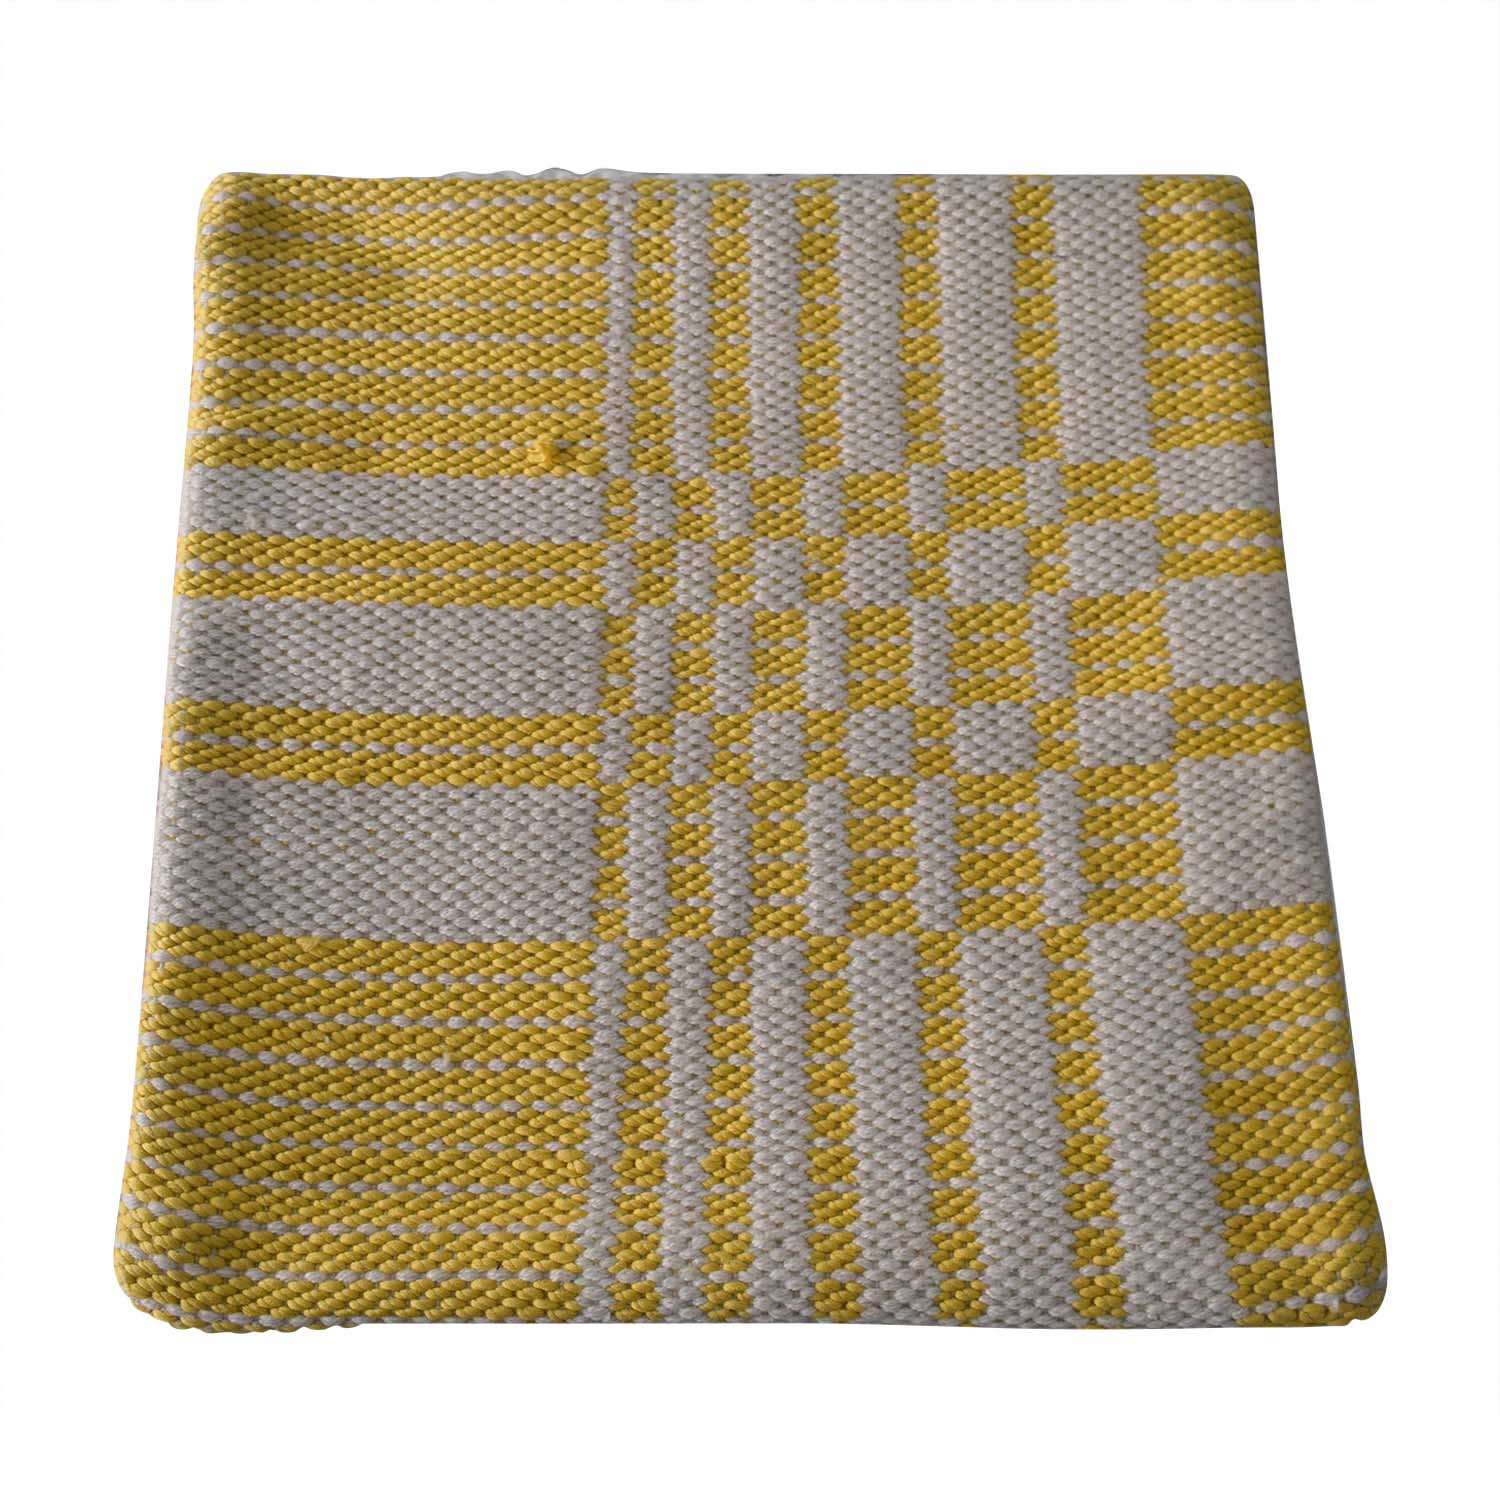 Obeetee Obeetee Geo Yellow Cushion Cover for sale